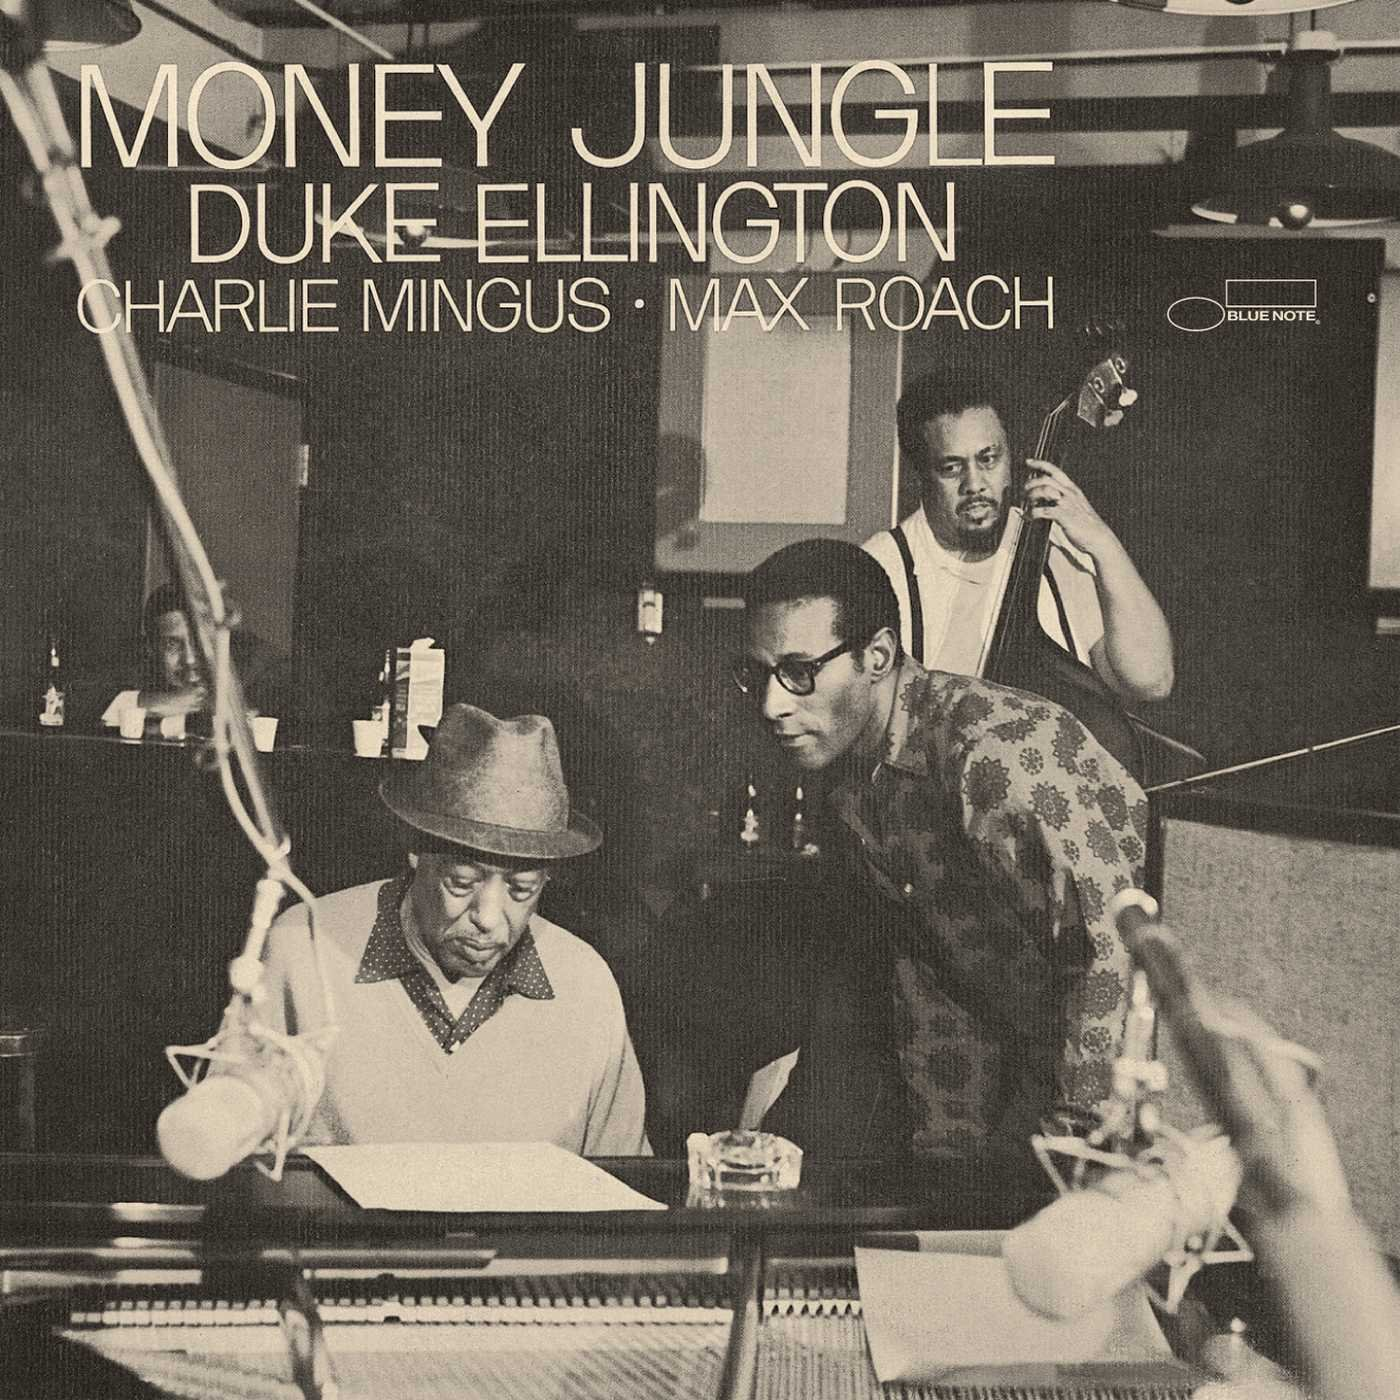 money jungle by duke ellington charlie mingus max roach amazon money jungle by duke ellington charlie mingus max roach amazon co uk music